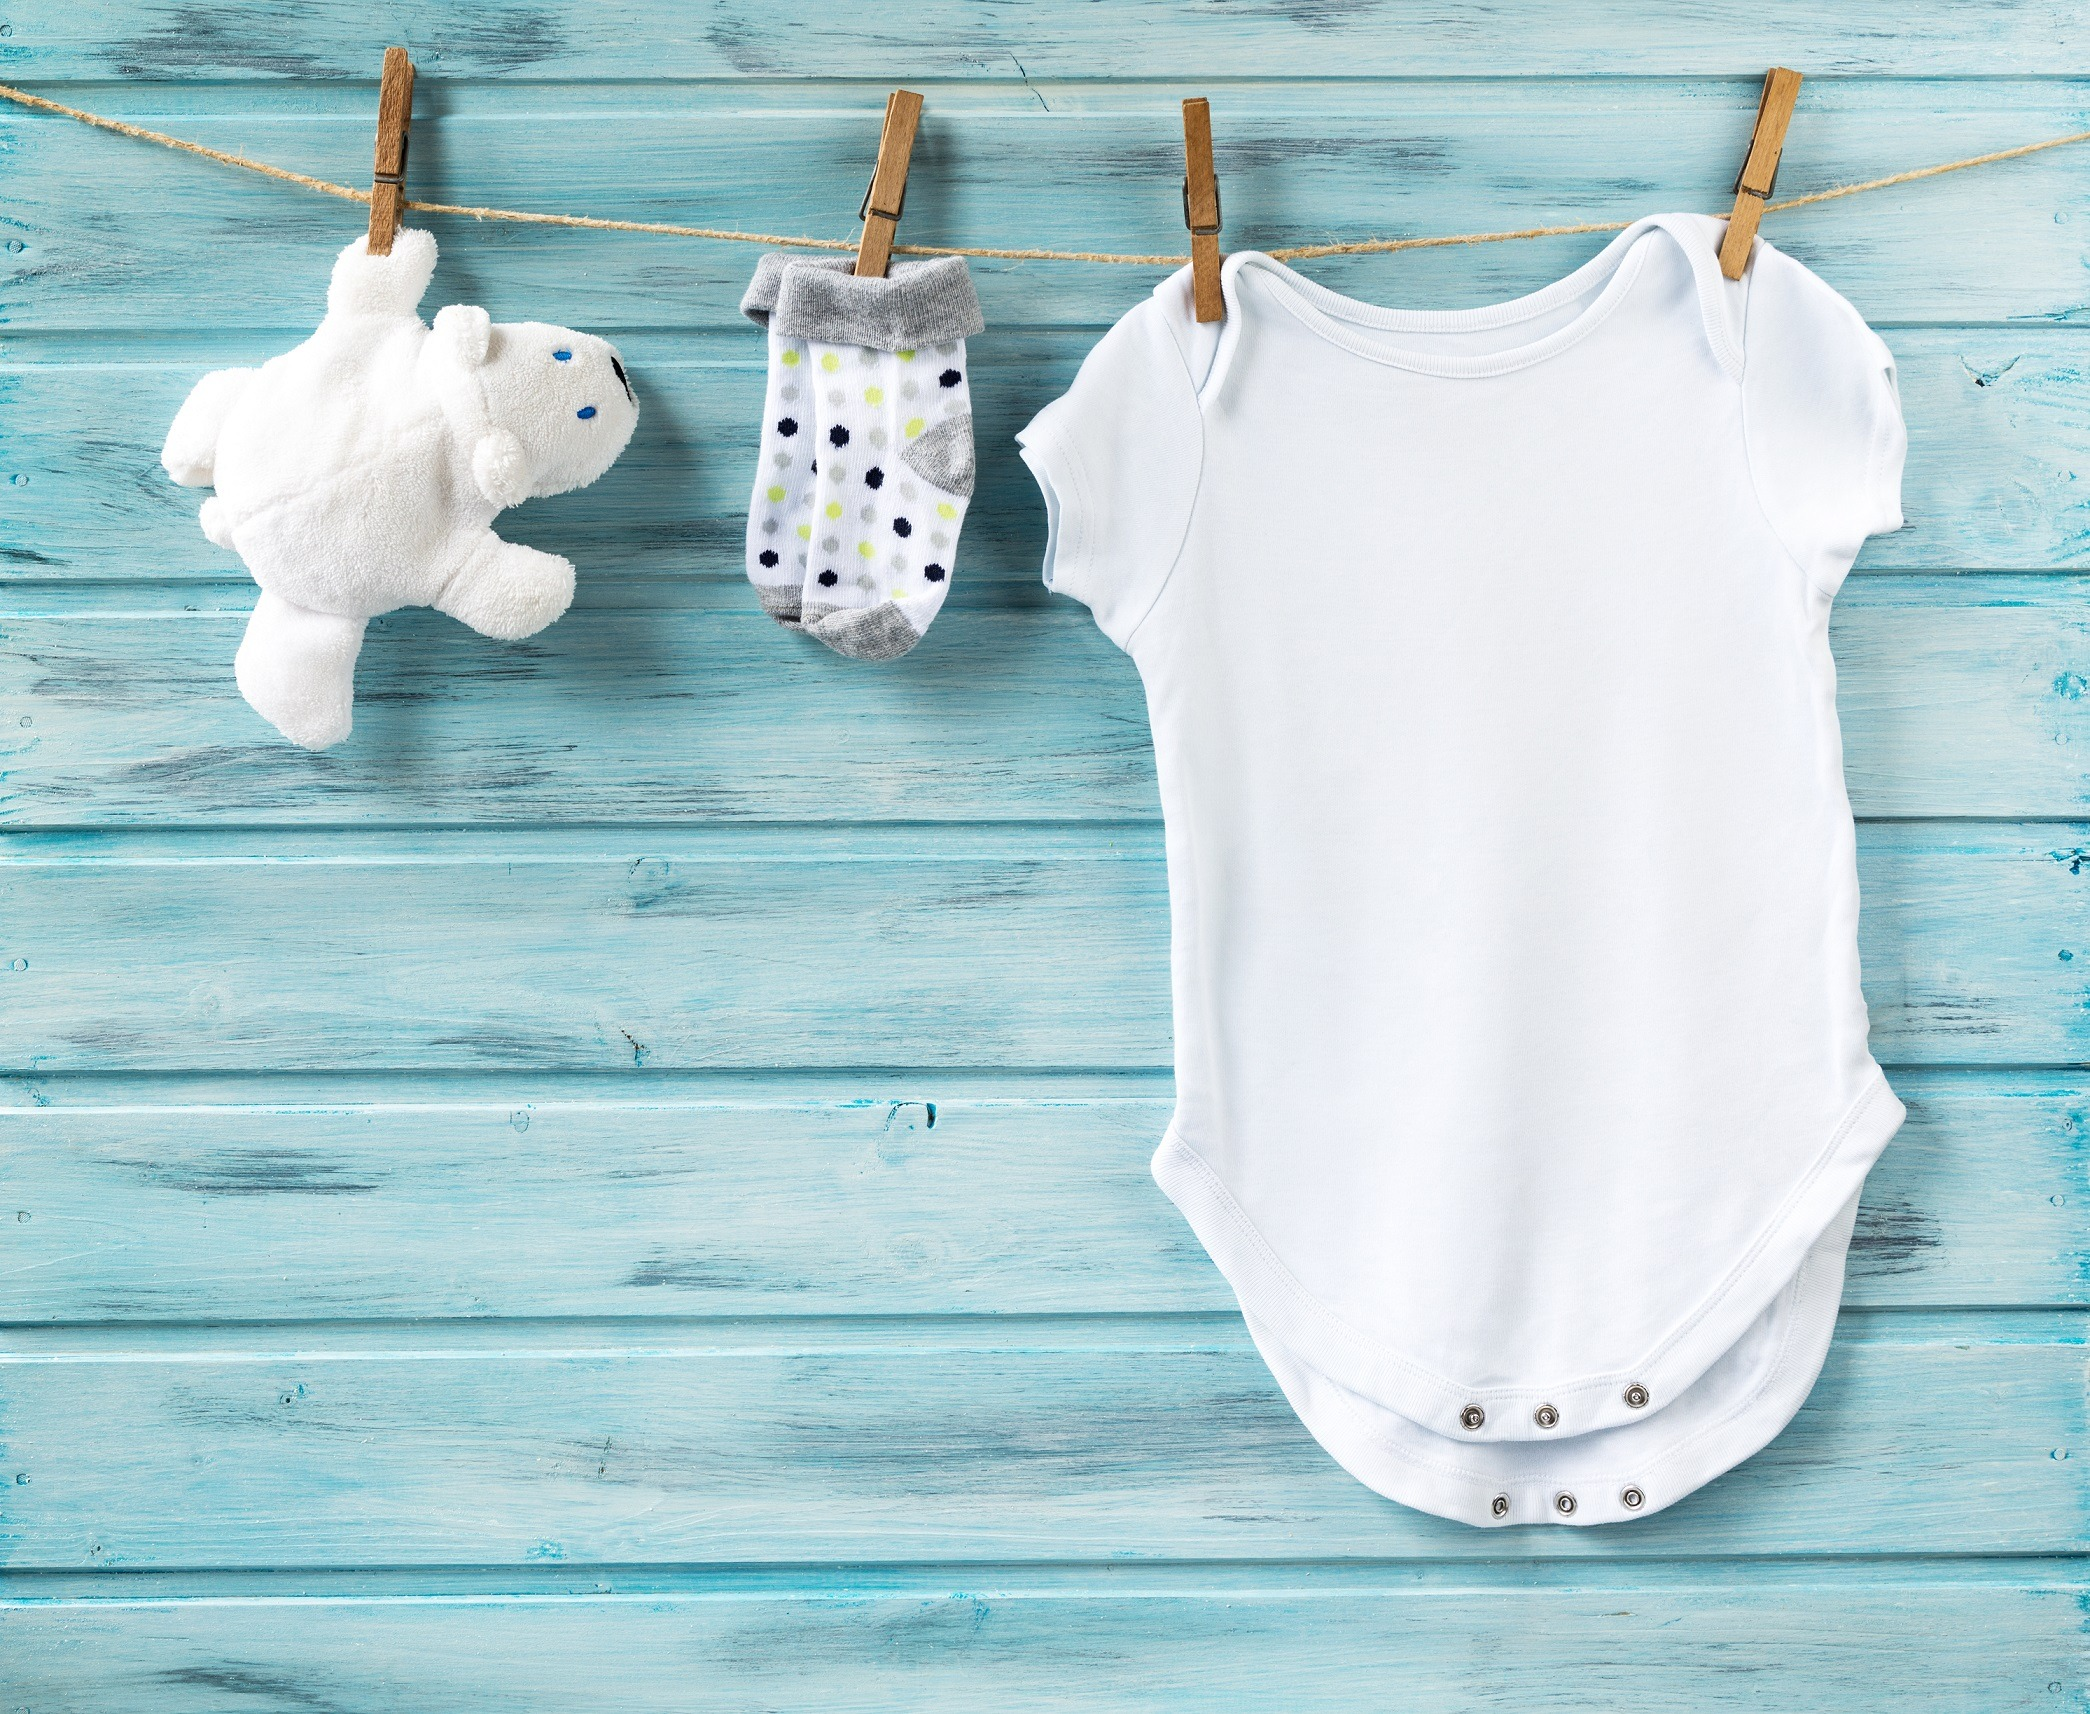 Blue background with white baby onesie and sock